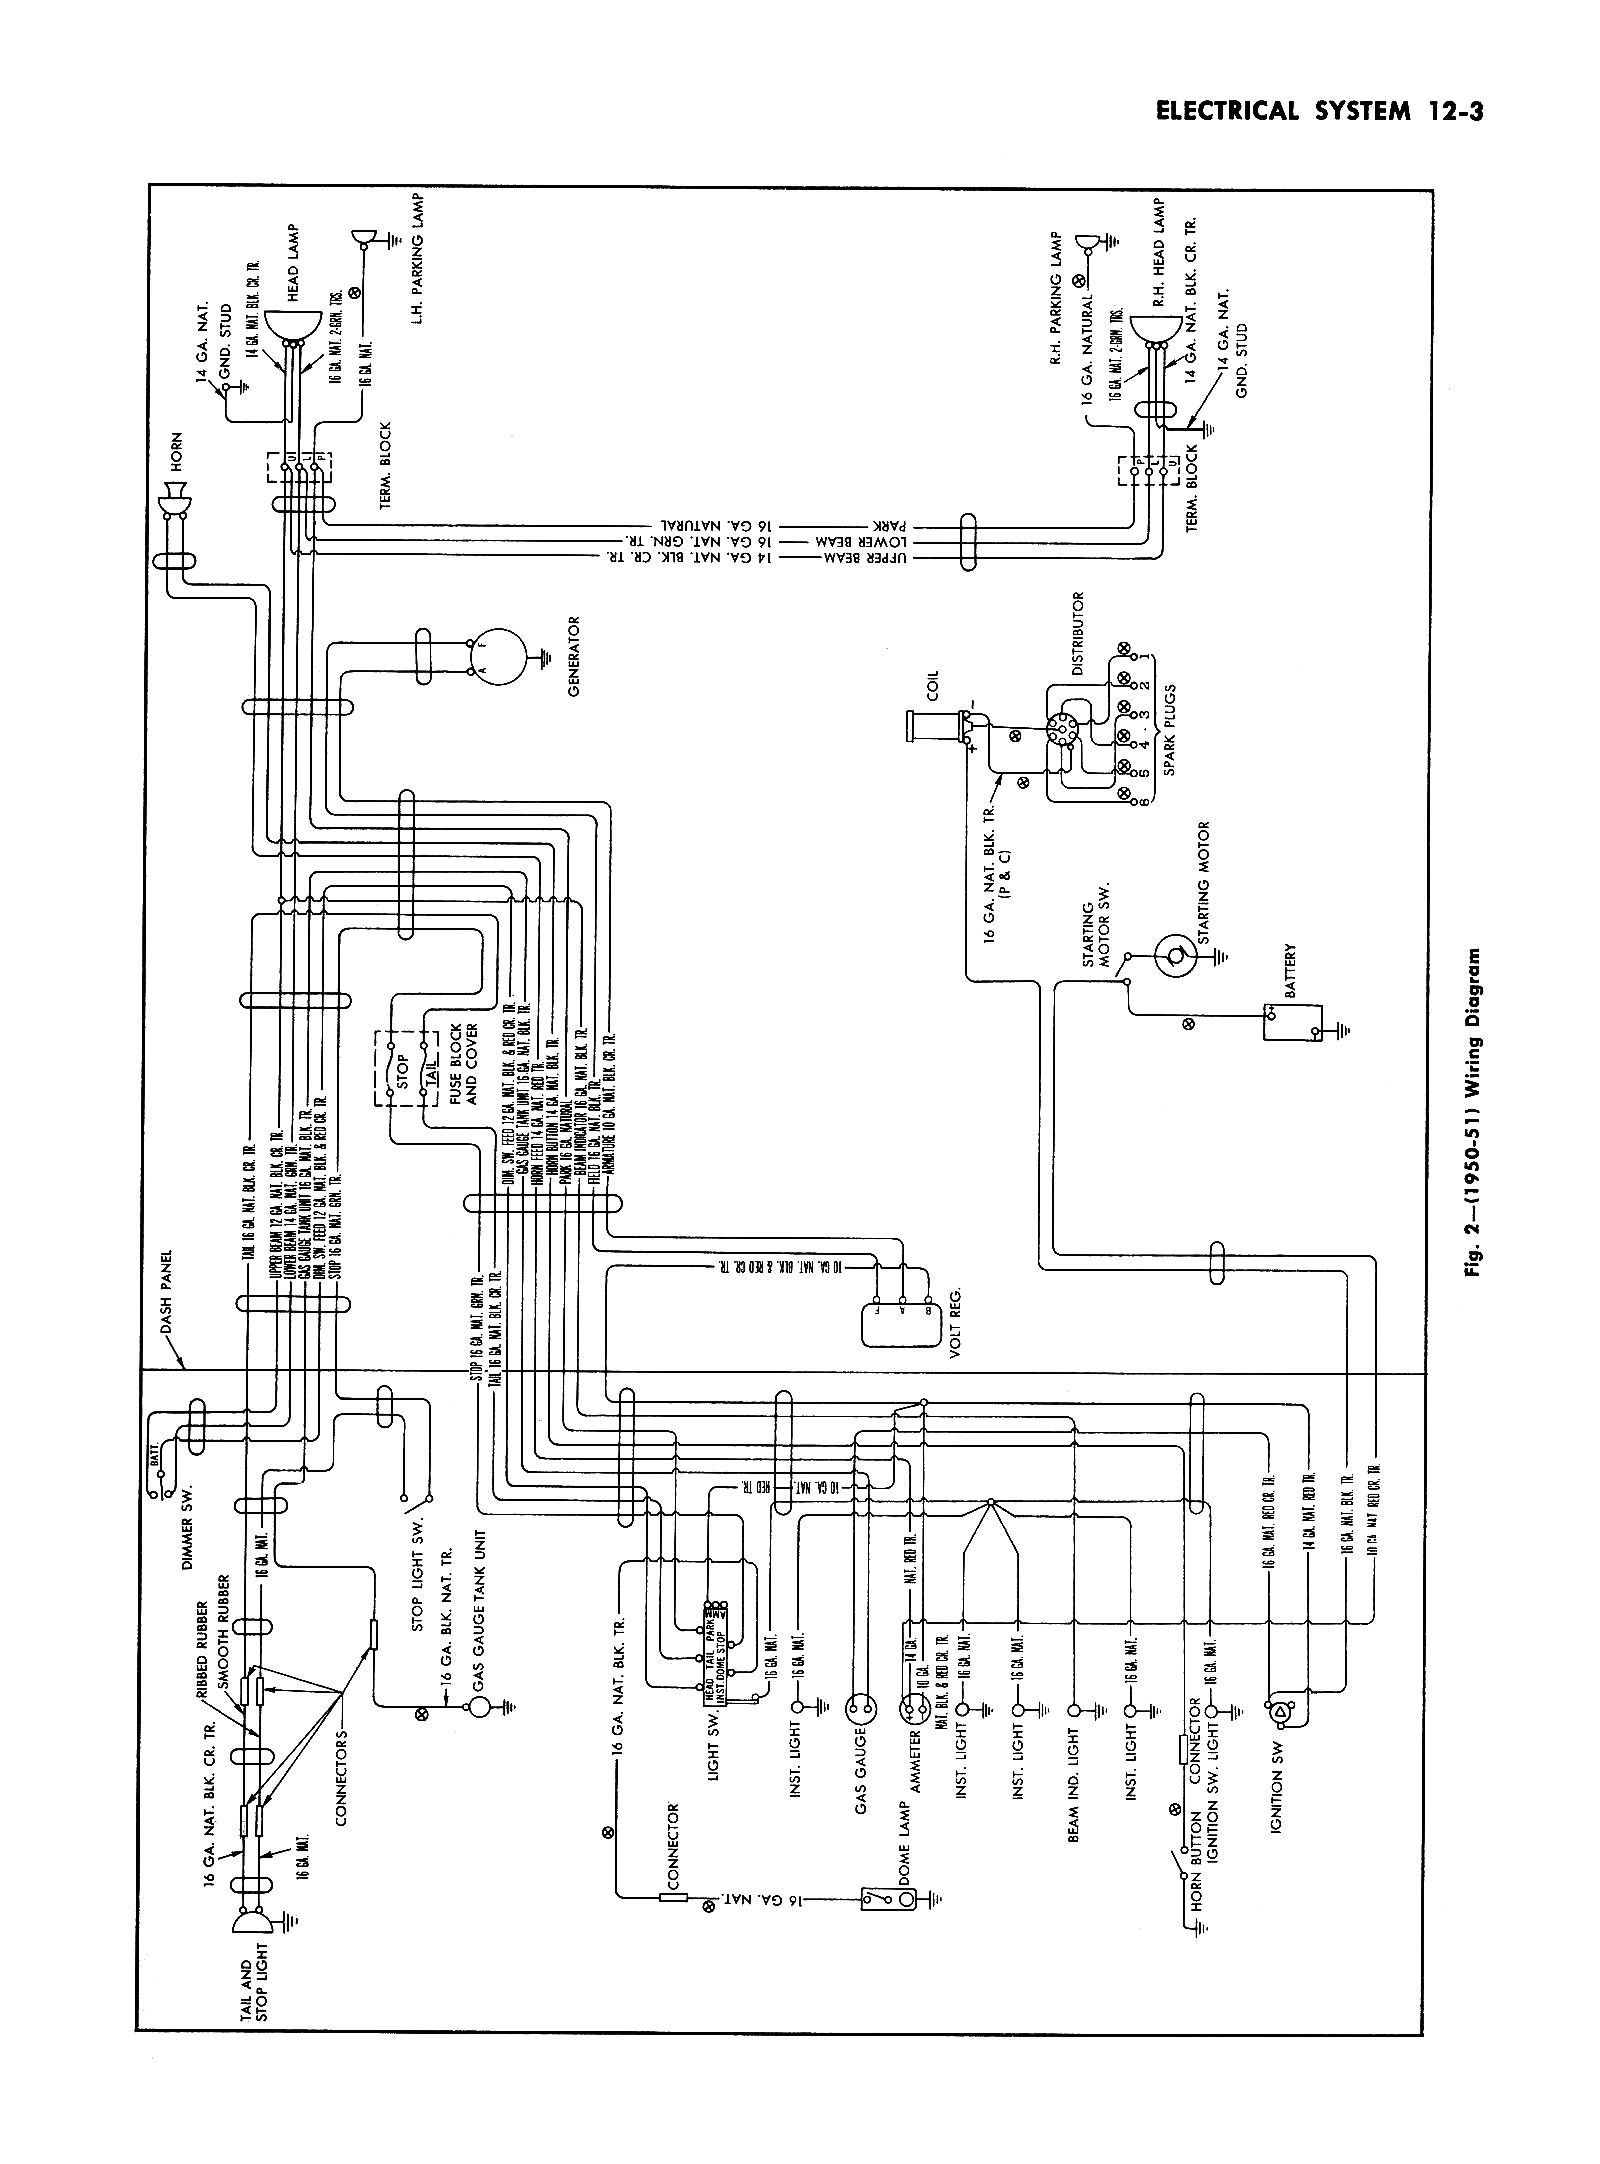 small resolution of 1953 lincoln wiring diagram wiring diagram centre 1953 lincoln wiring diagram